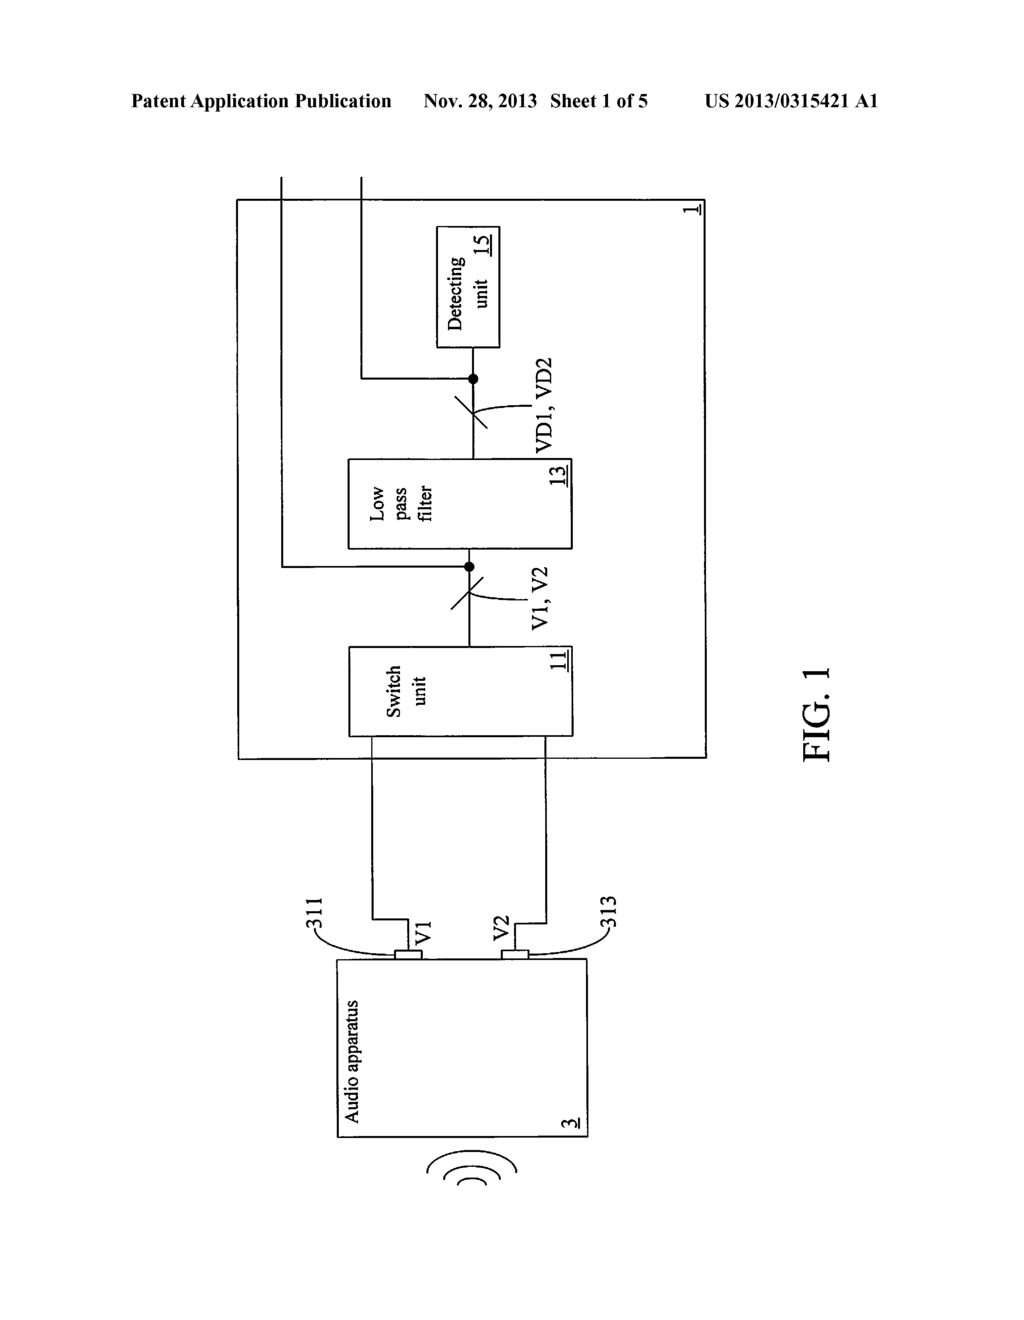 Wiring Diagram For Schematic Switch Combo Jack Detecting Circuit And Image 02